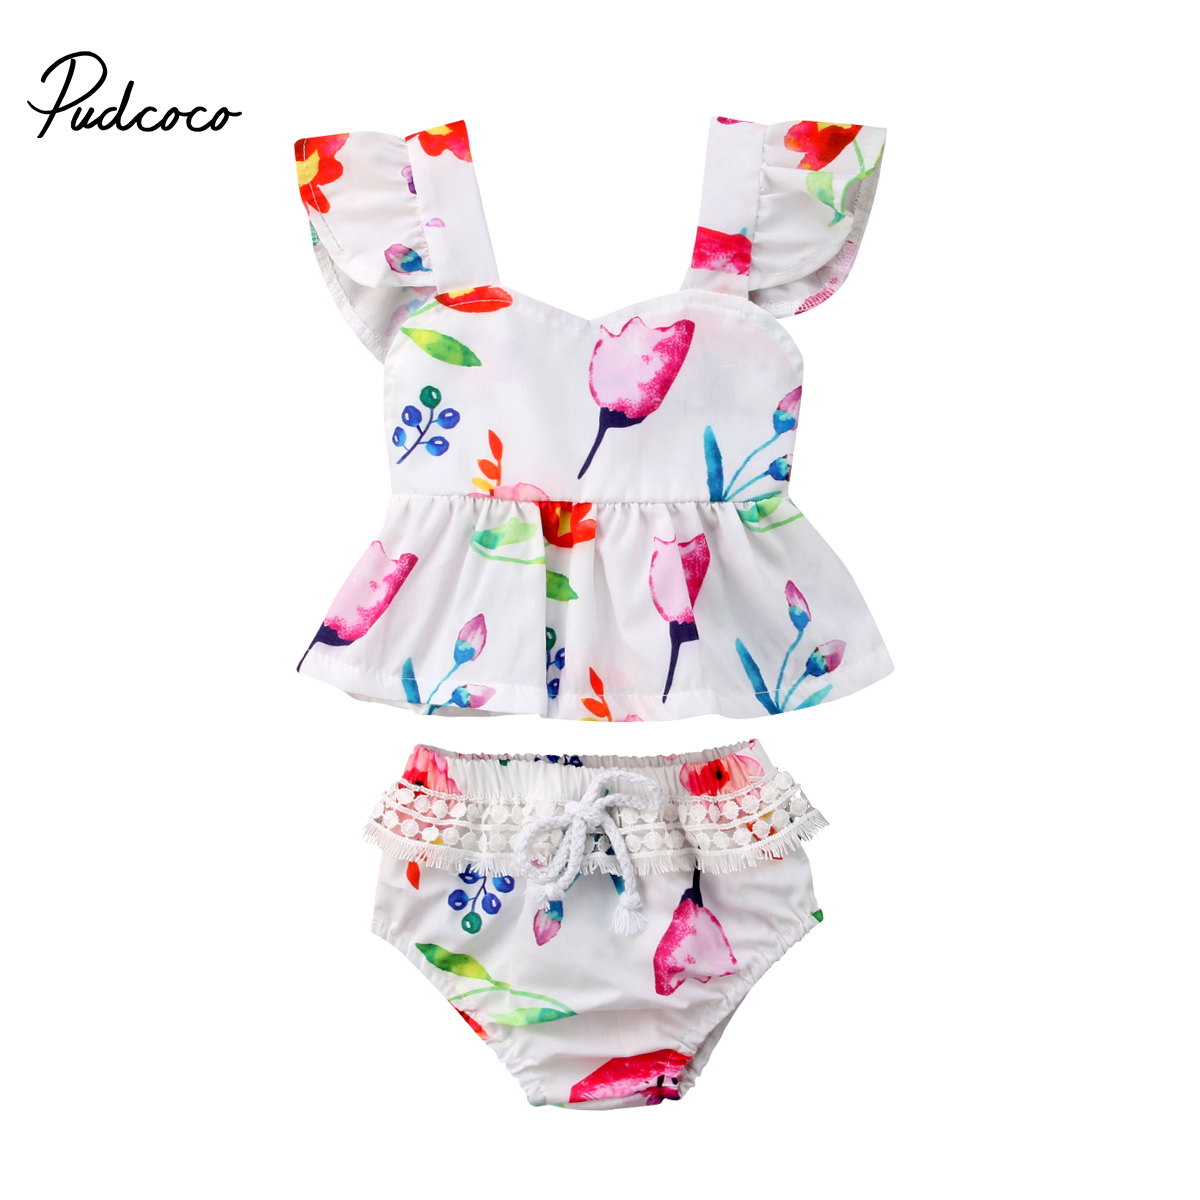 Pudcoco 2pcs Newborn Toddler Baby Girl Summer Clothes Fly Sleeve Floral Top+Short Pants Outfits Set